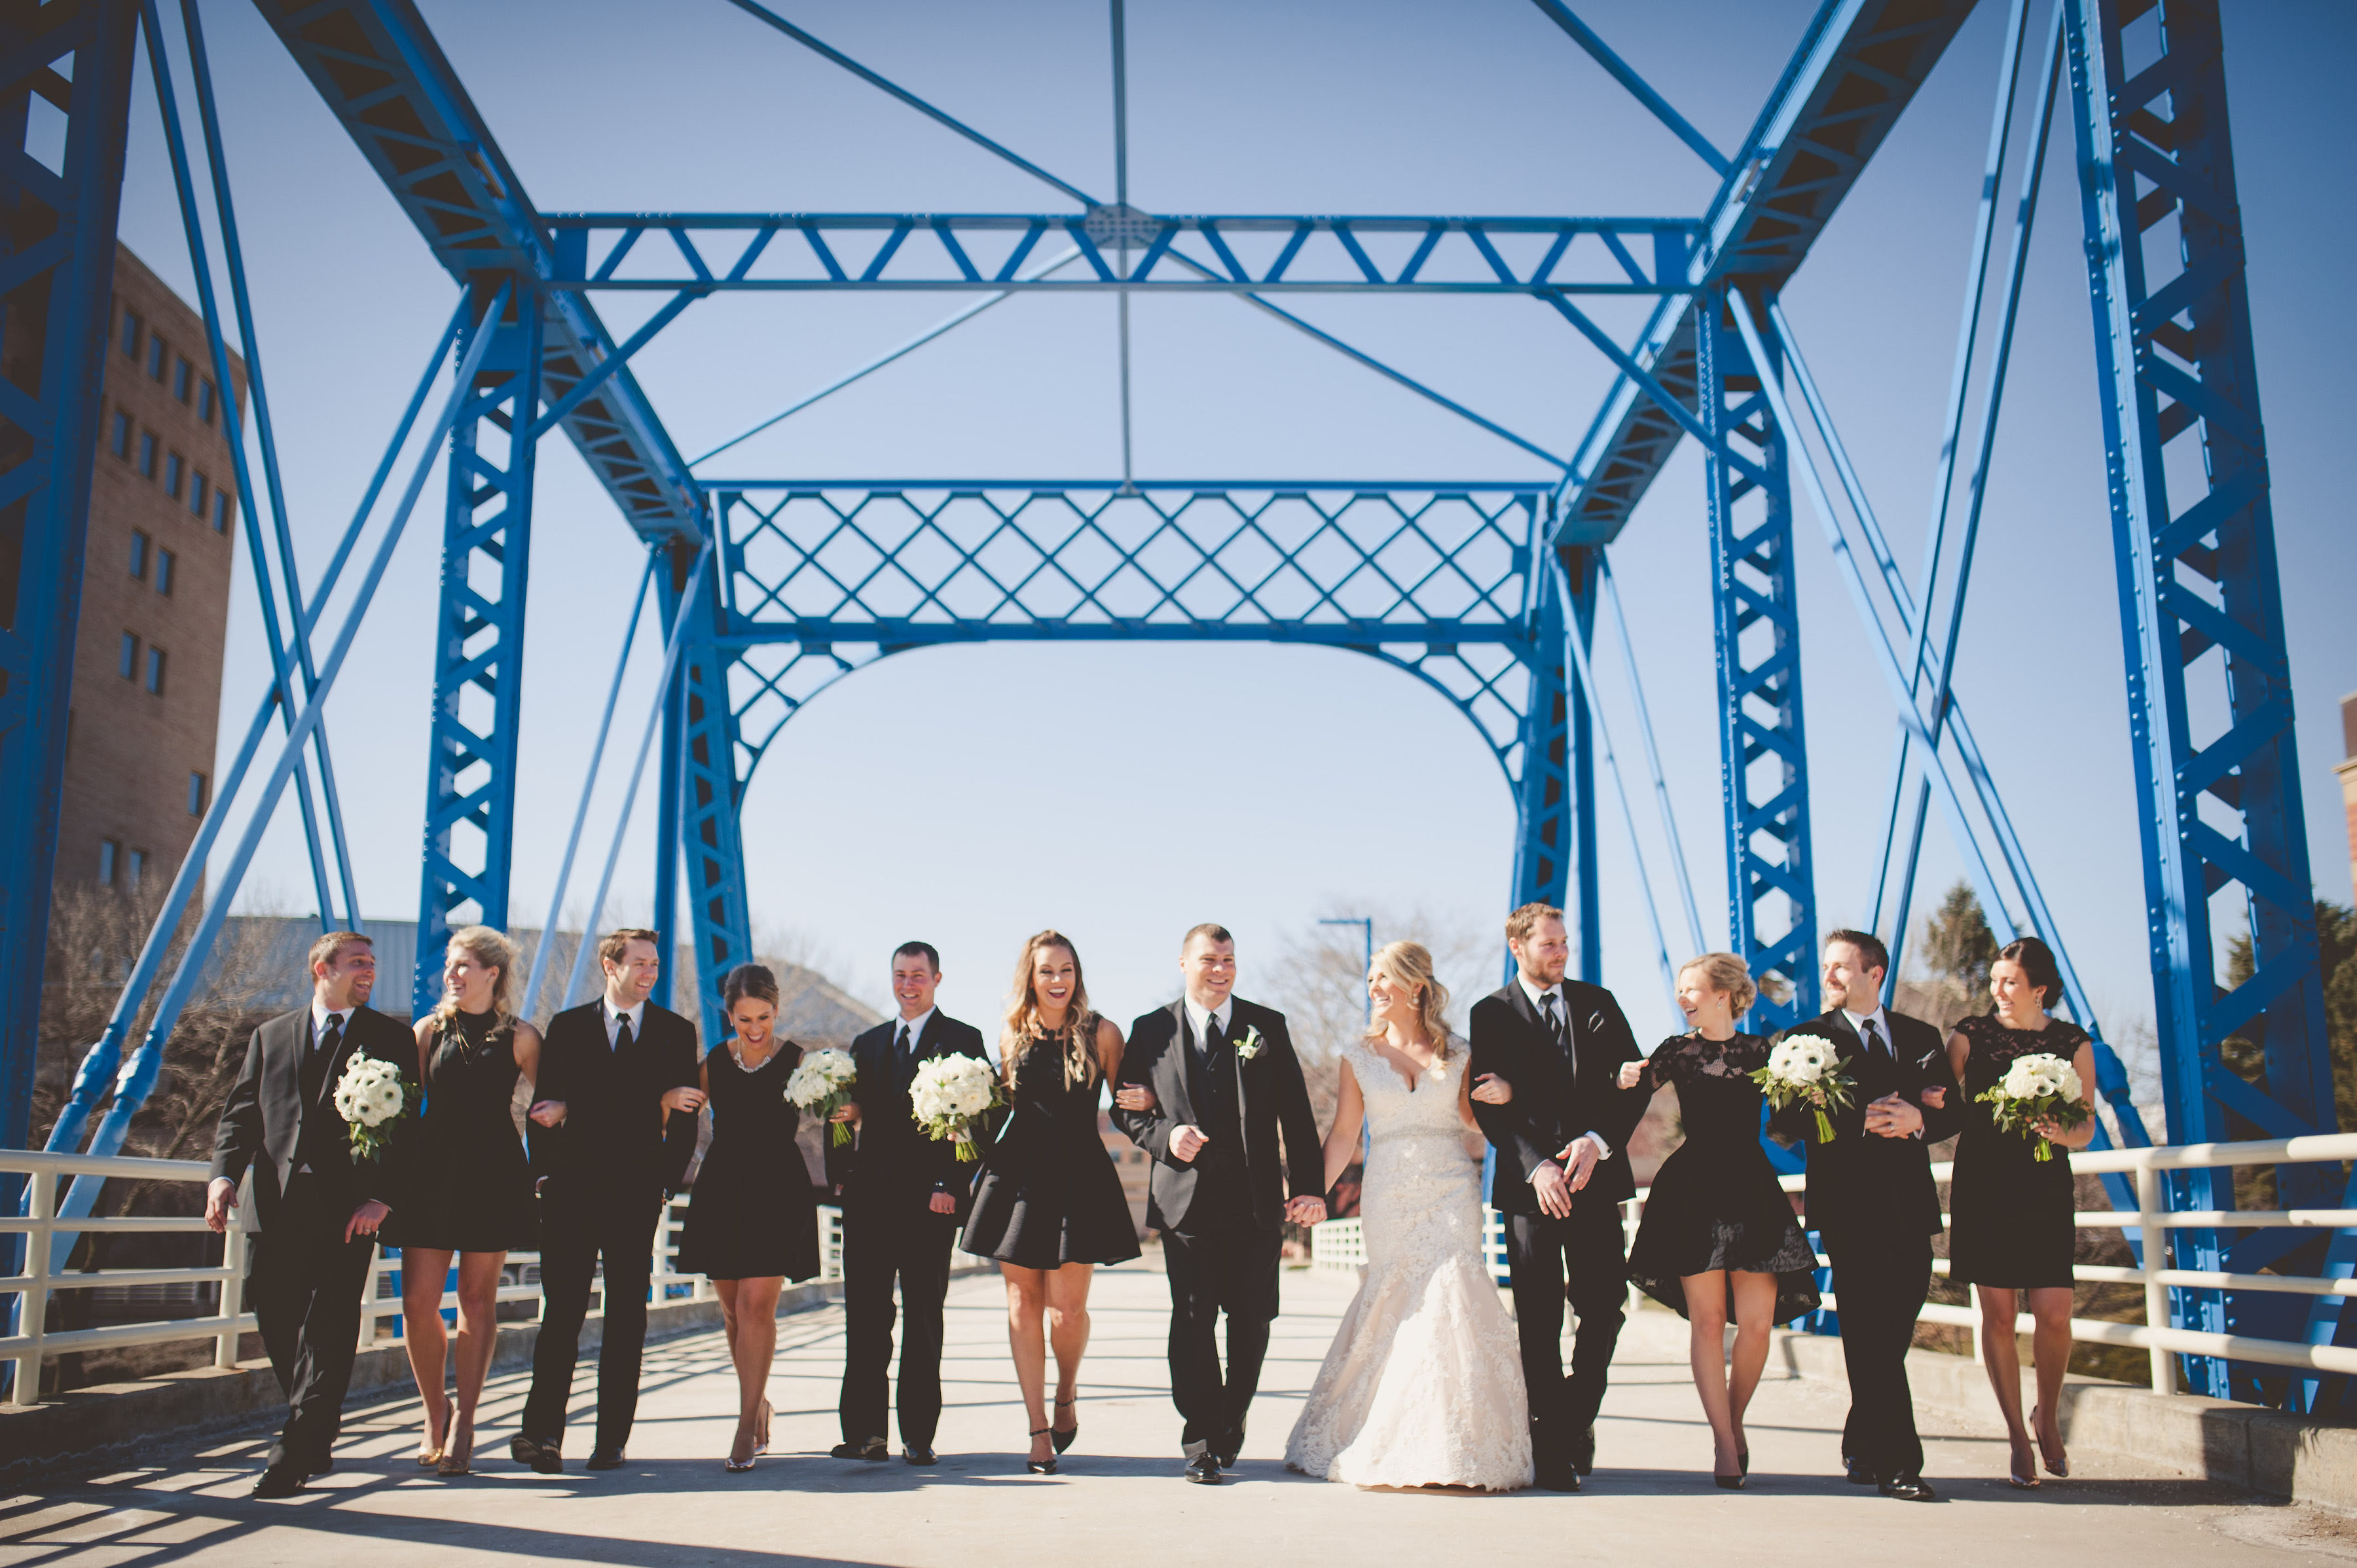 wedding in grand rapids michigan photogrpahy